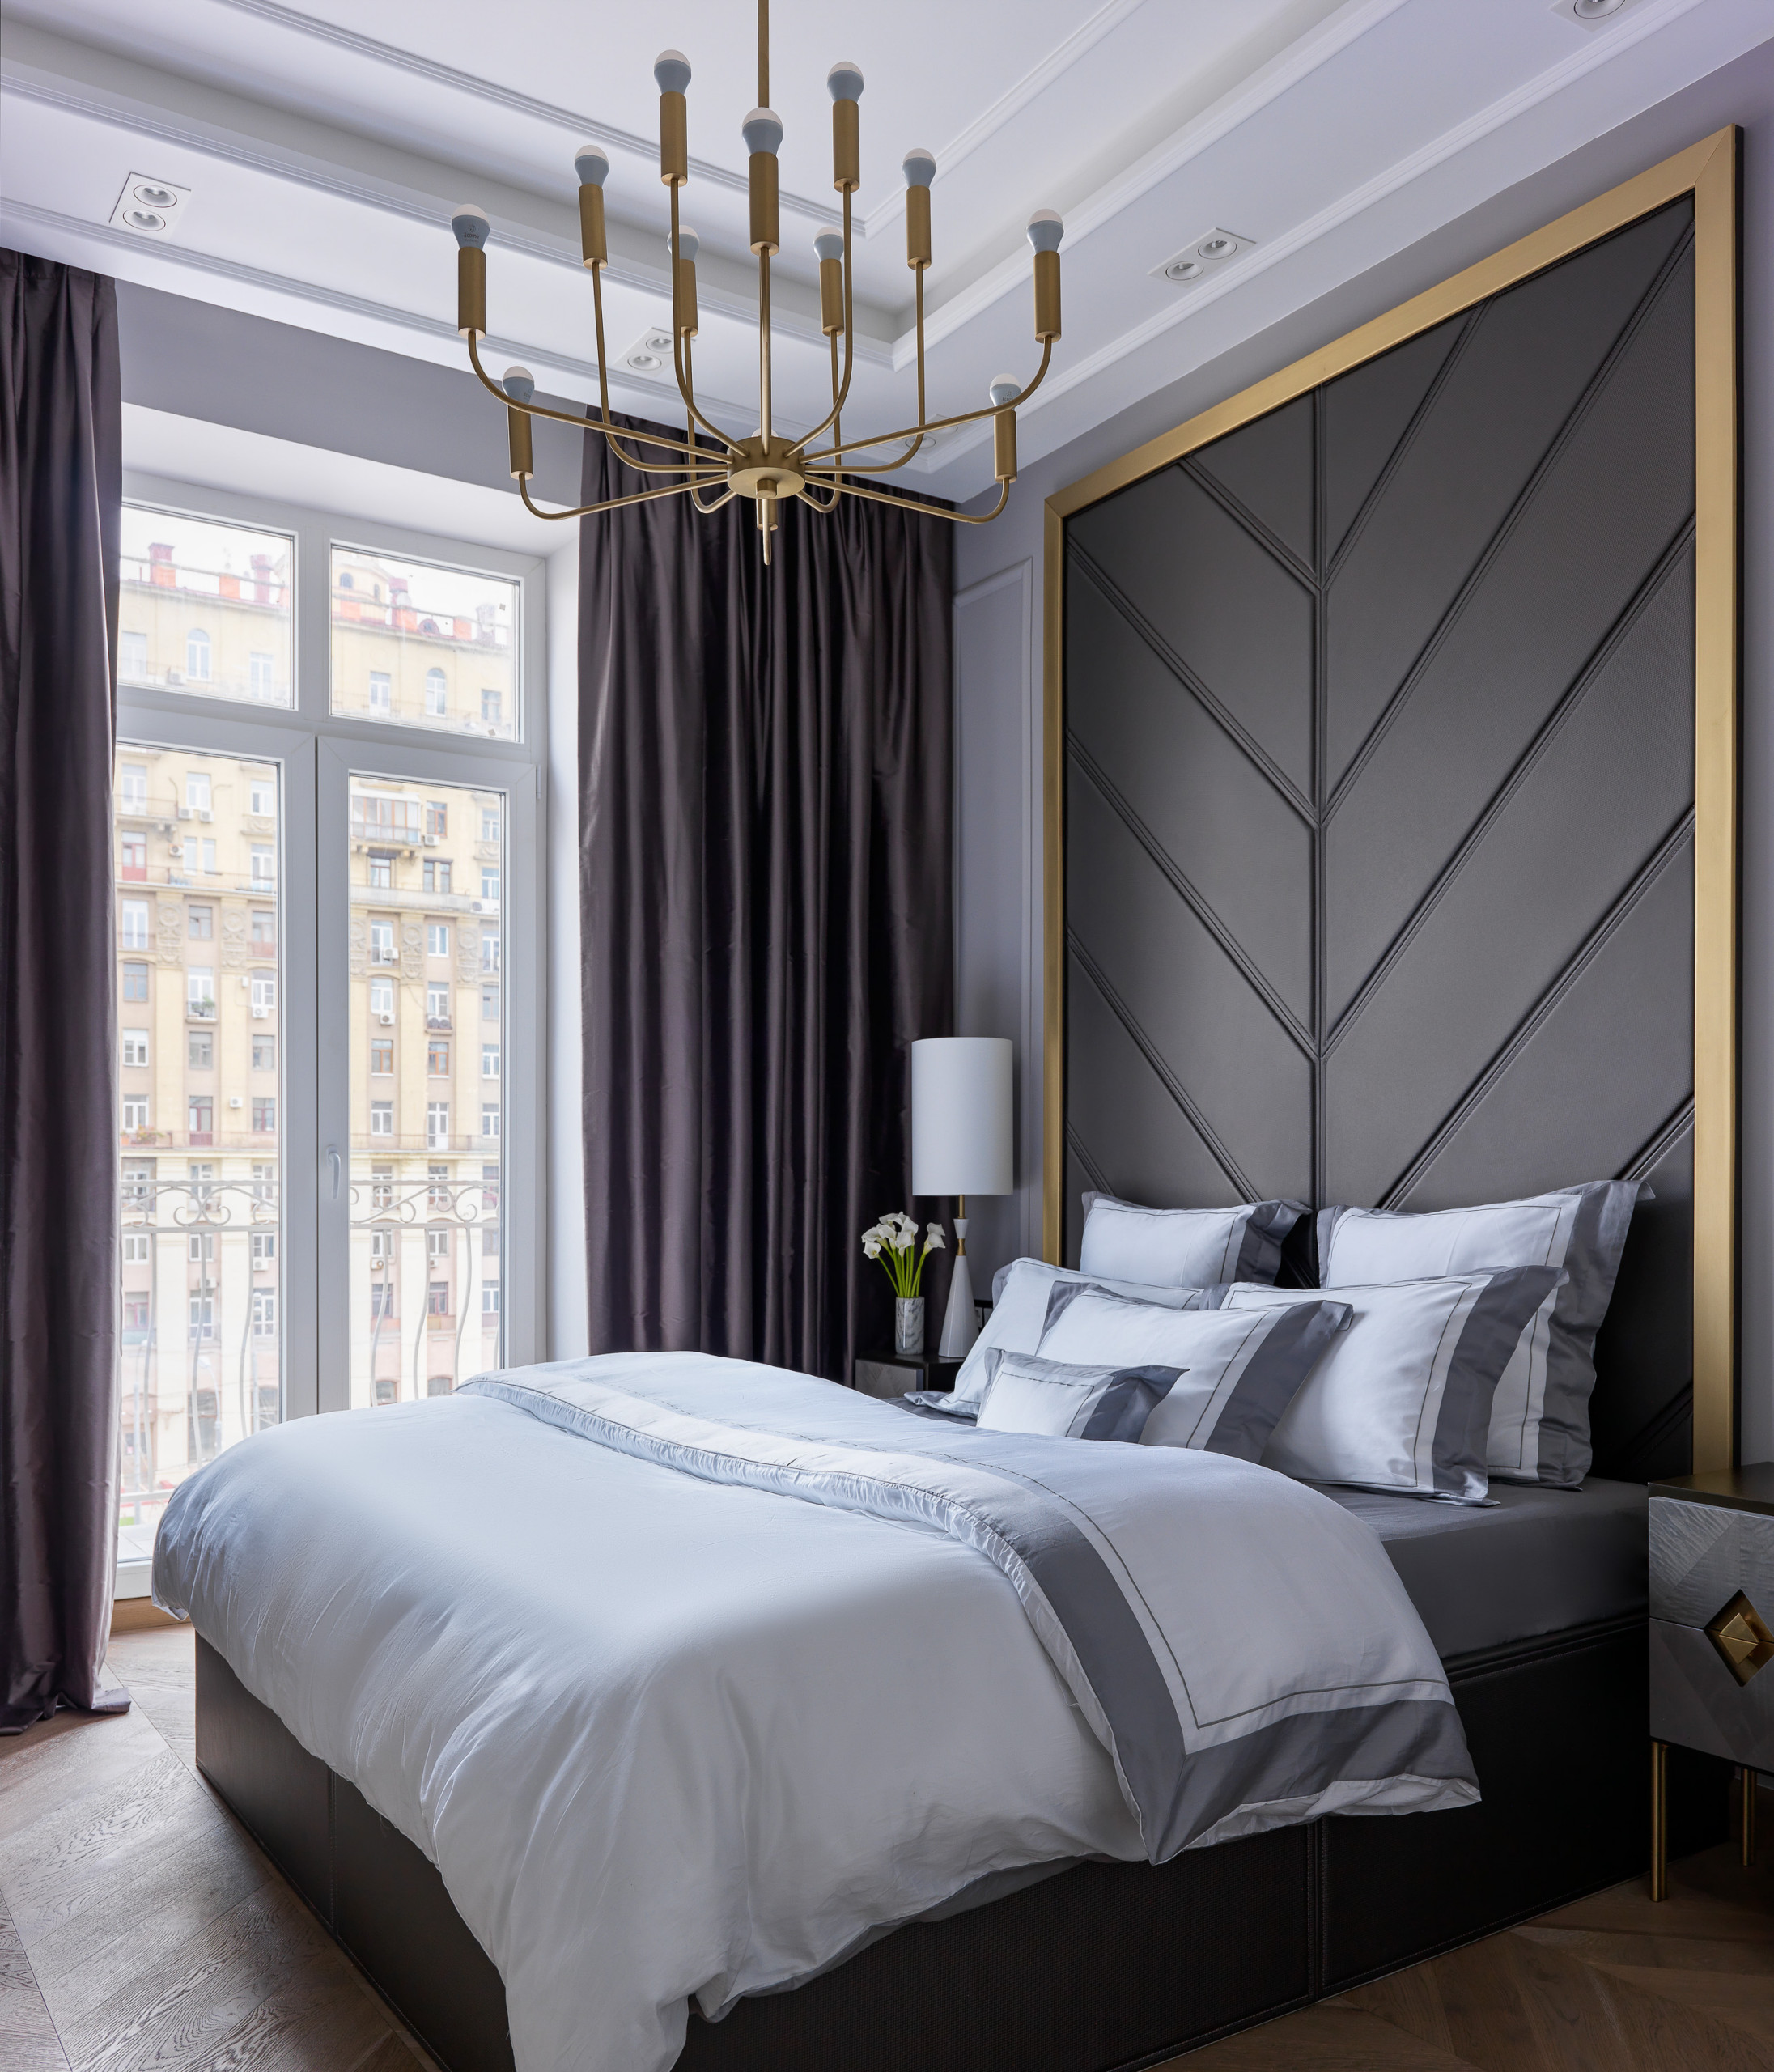 75 Beautiful Wall Paneling Bedroom Pictures Ideas January 2021 Houzz